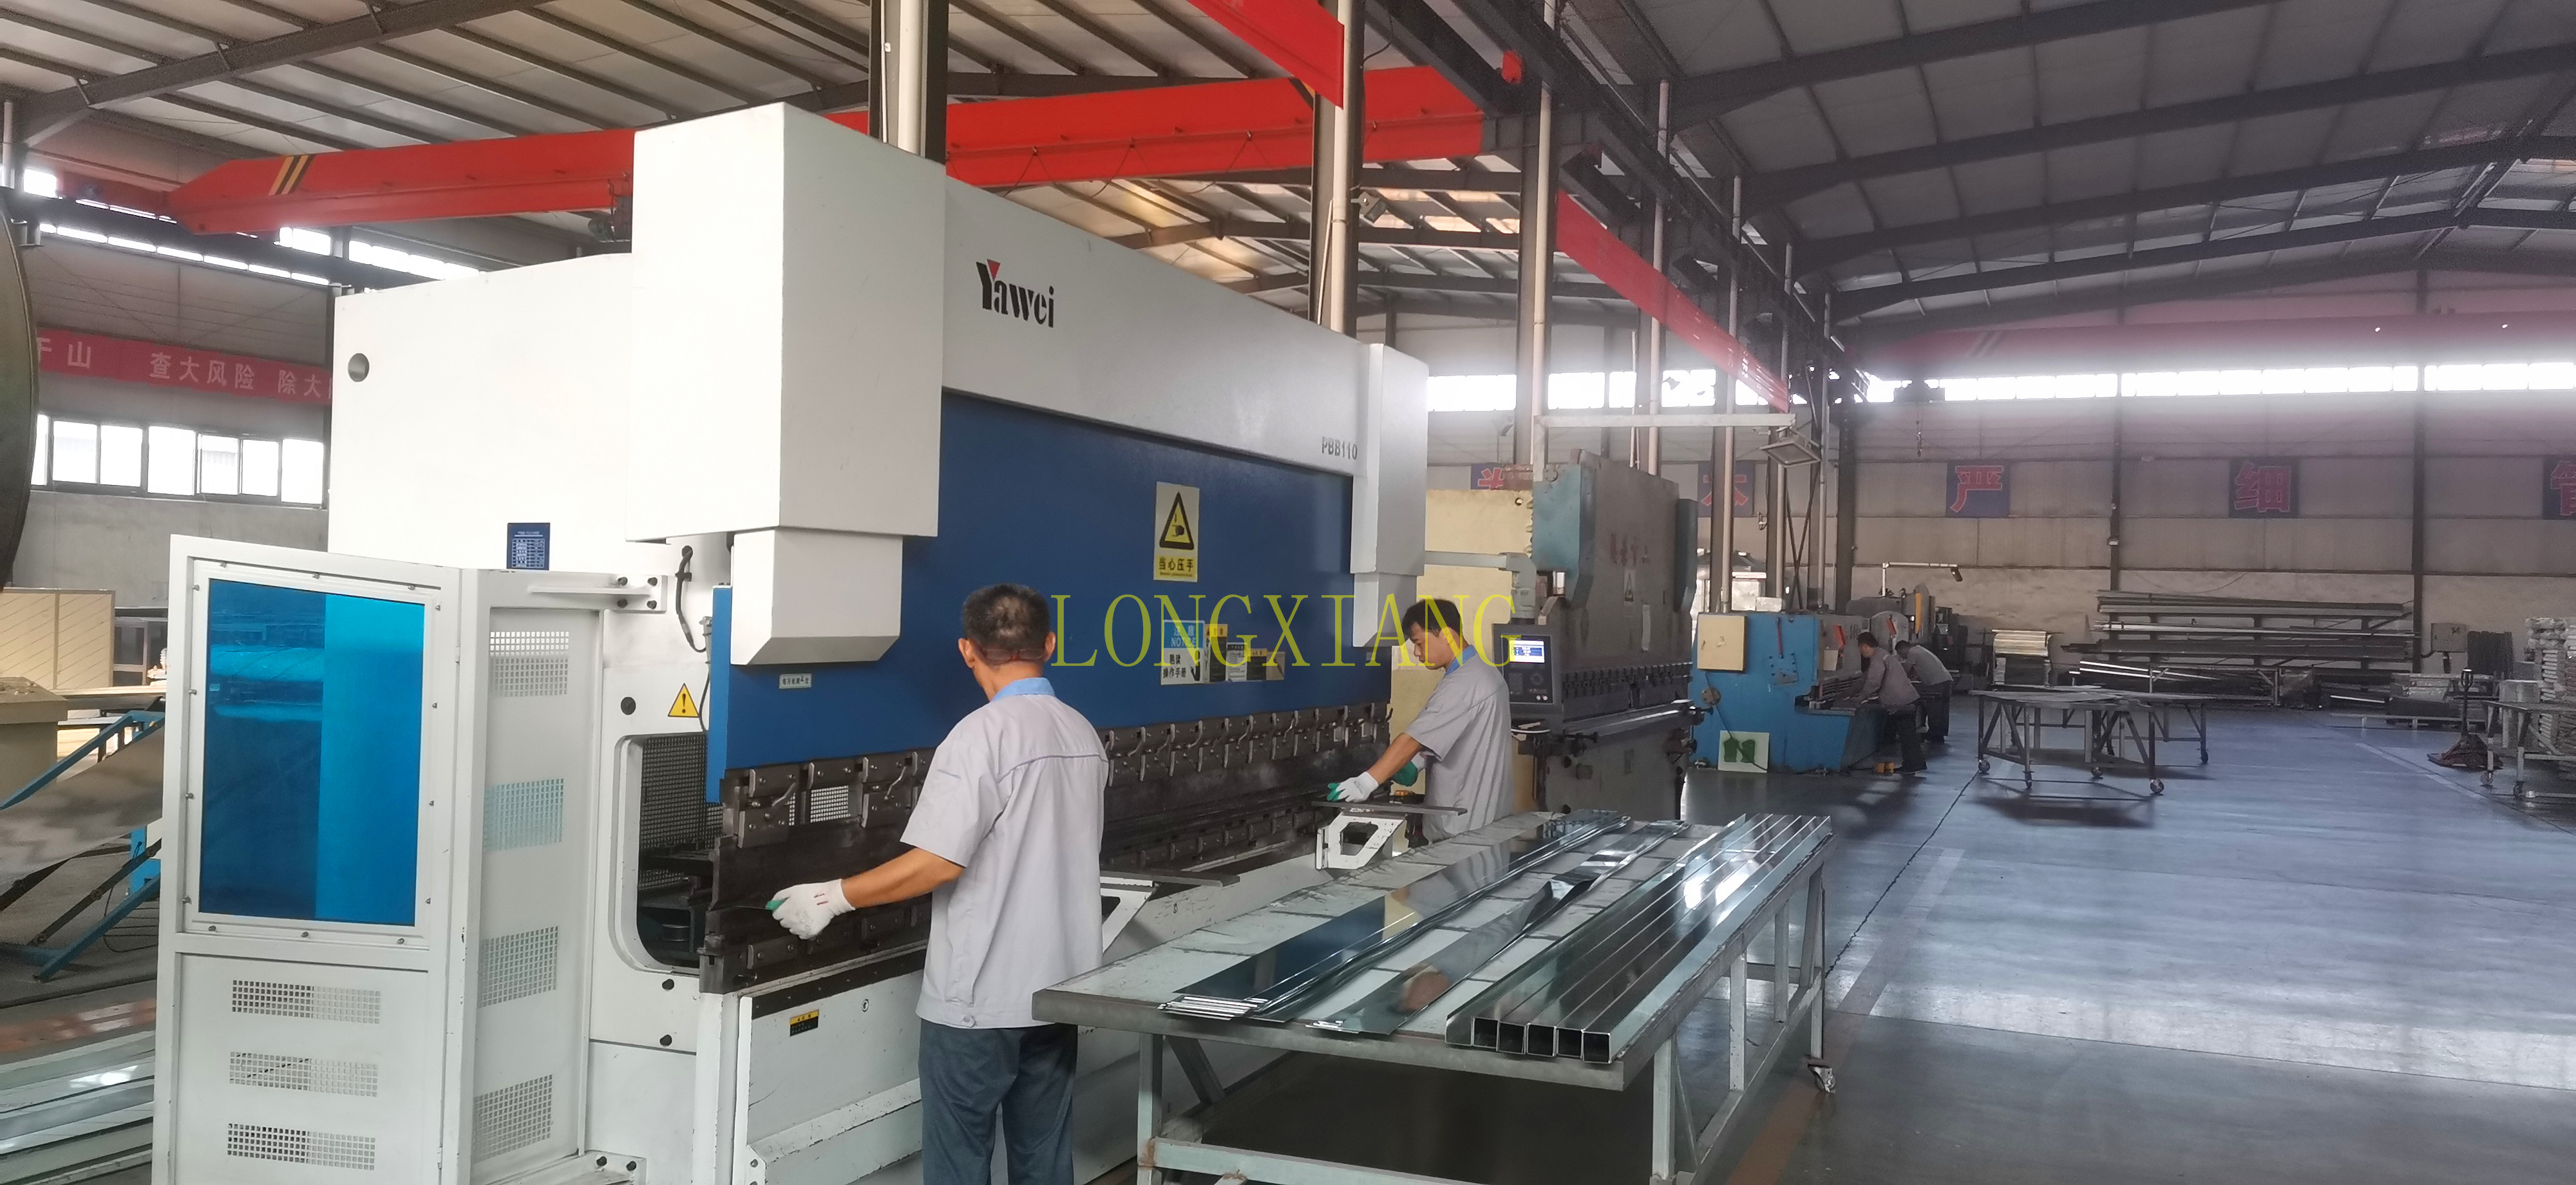 LONGXIANG spray booth workshop share with you